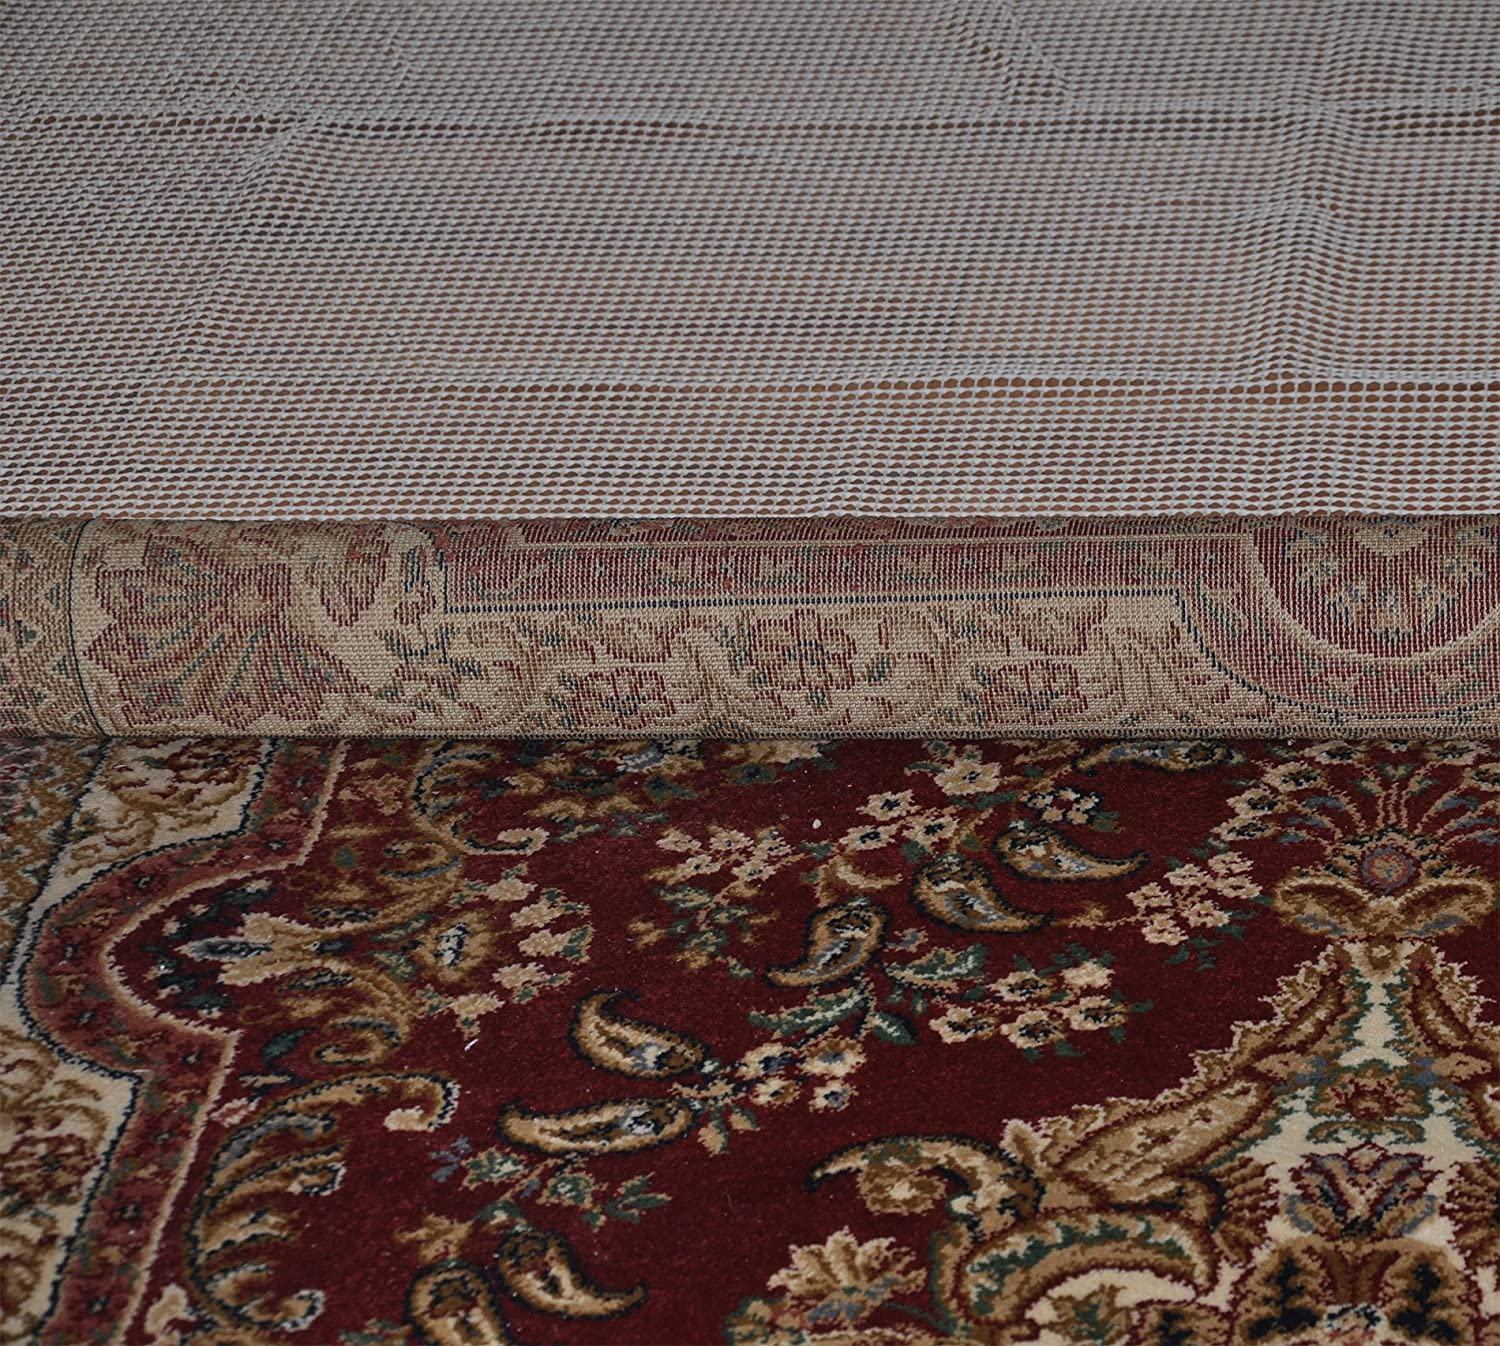 Amazon.com: non slip rug pad (5' x 8')   trim to fit any size ...